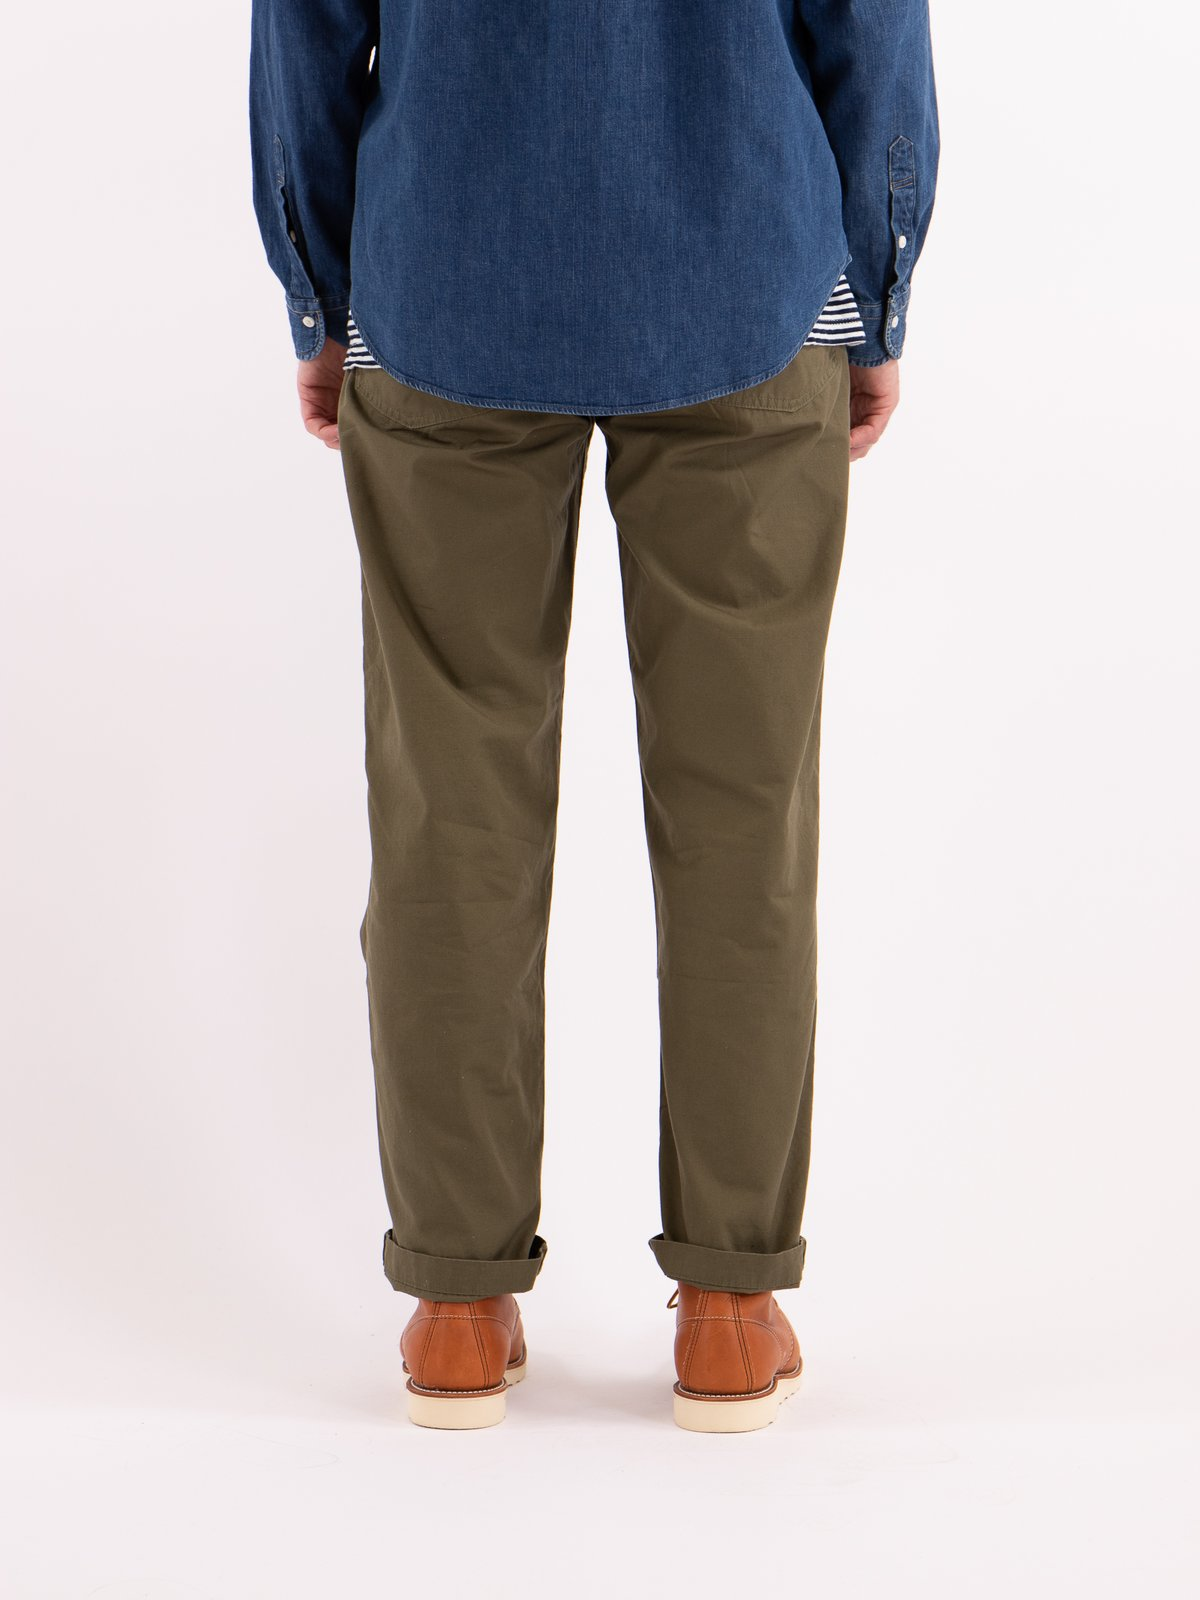 Army Green Ripstop Regular Fit US Army Fatigue Pant - Image 4